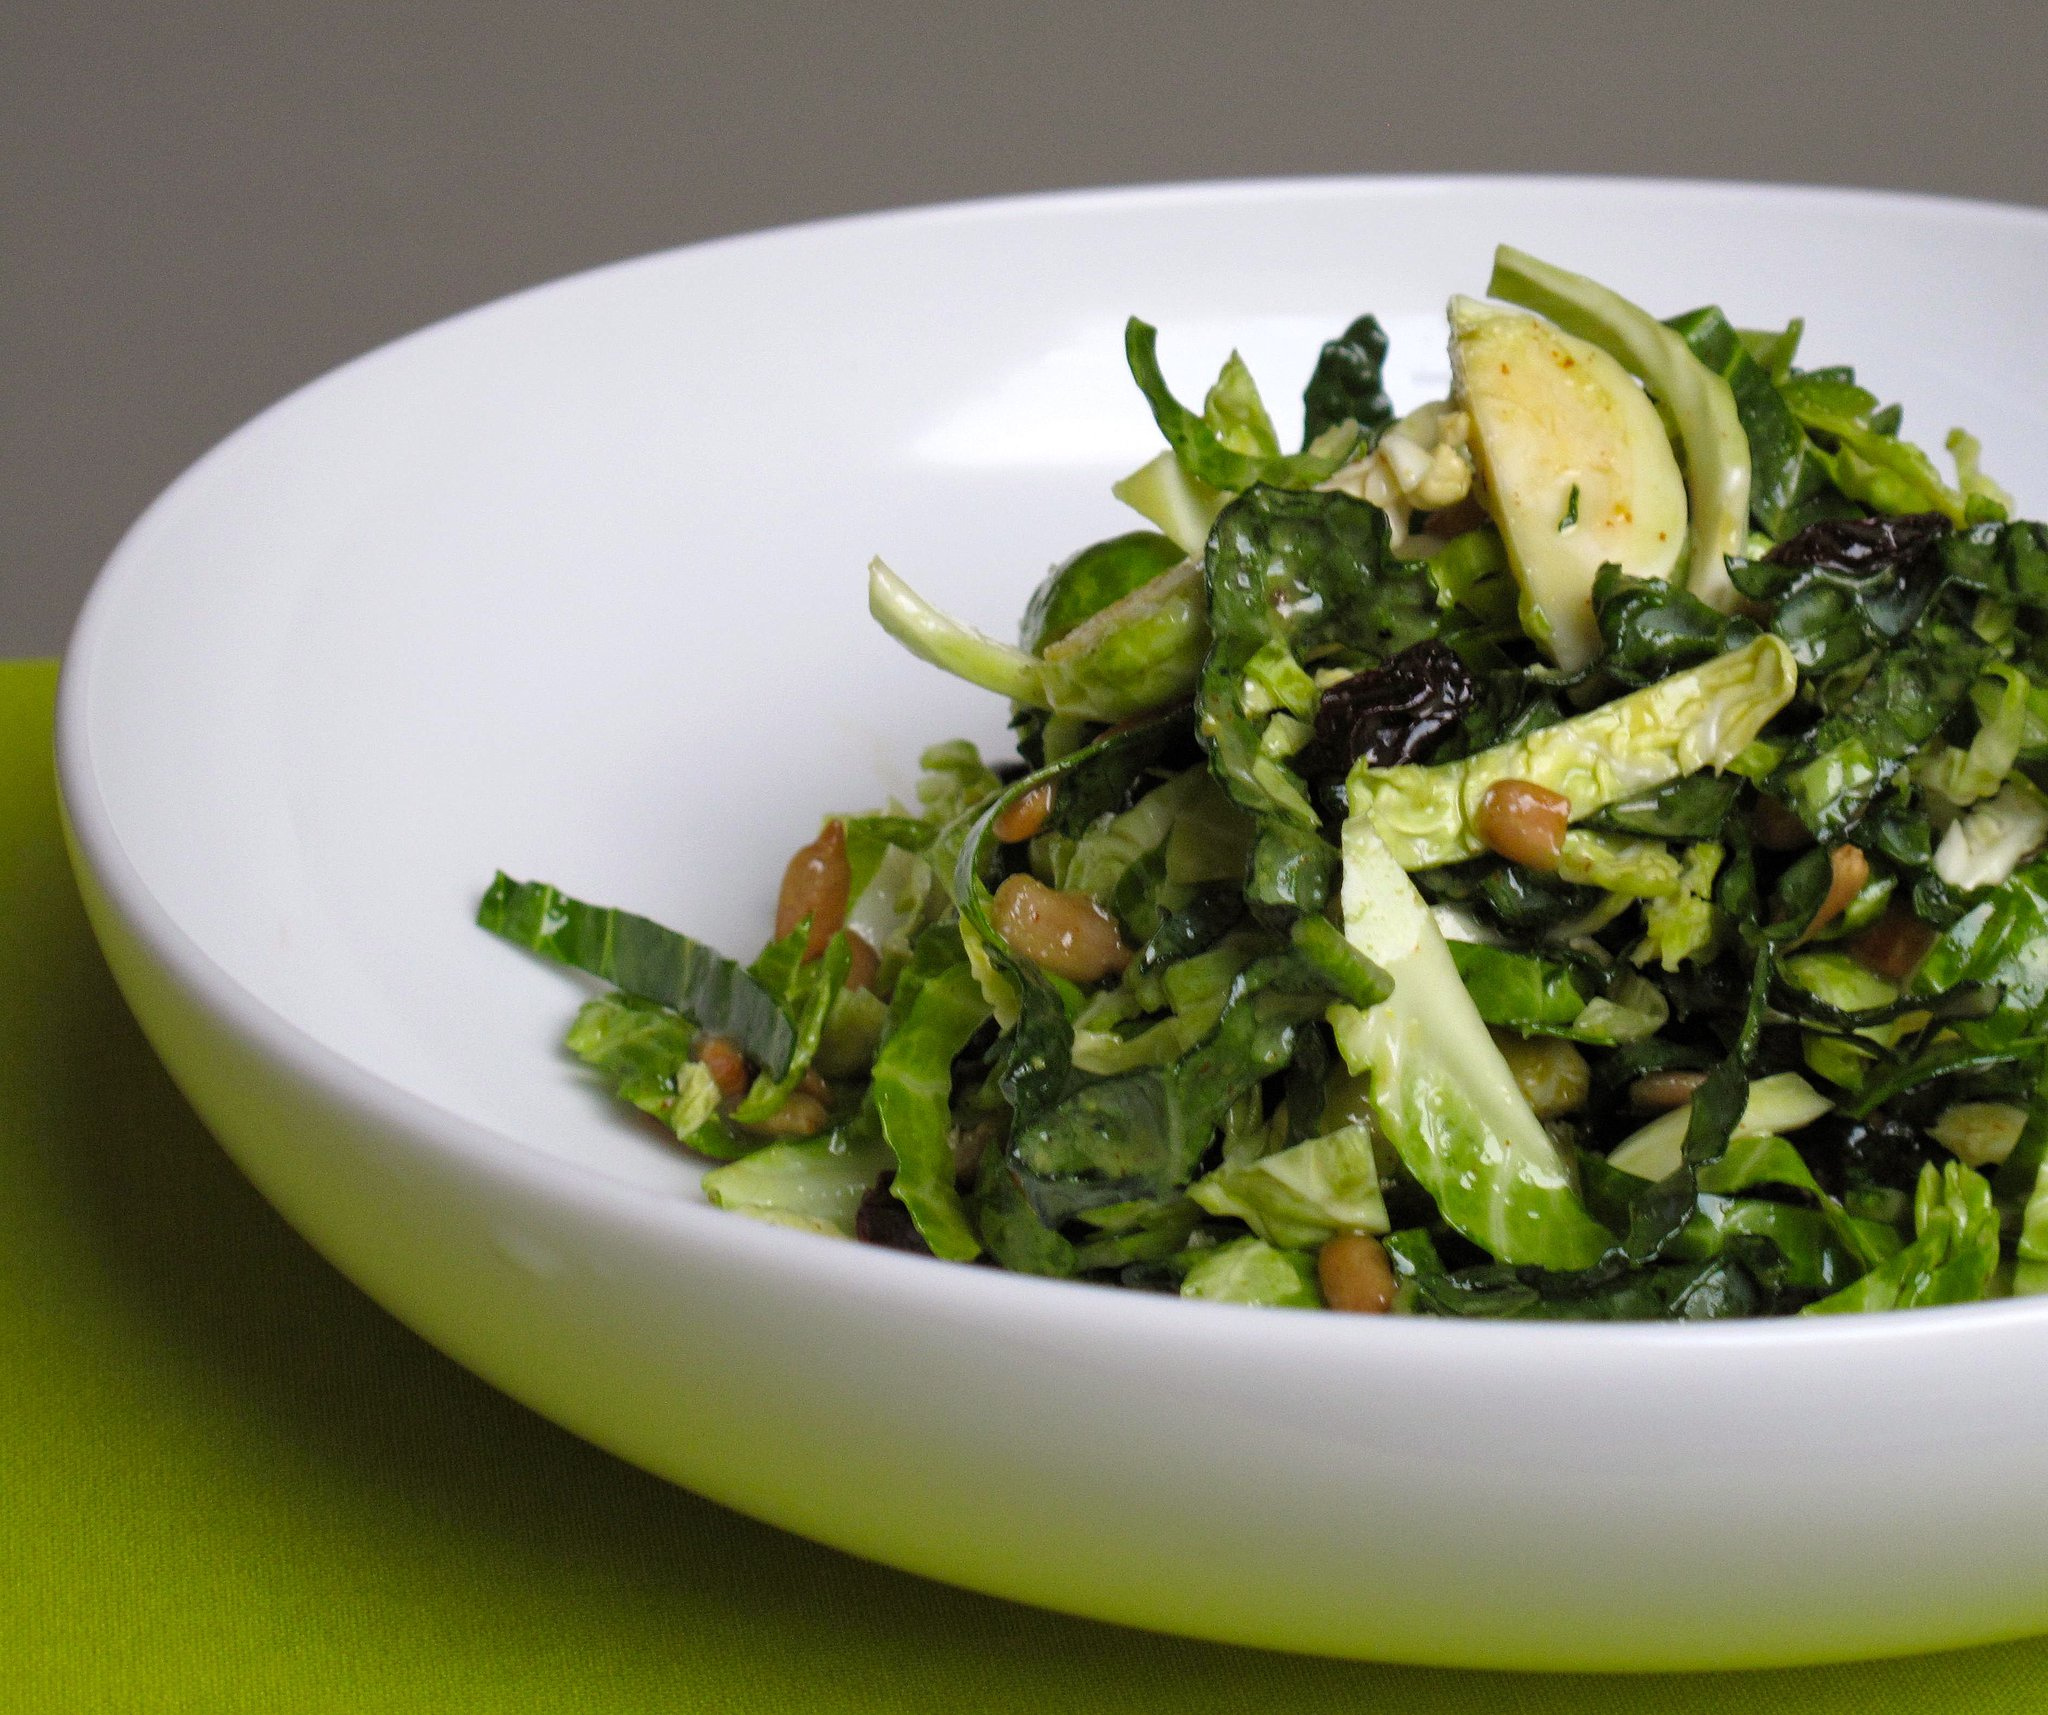 Shredded Kale and Brussels Sprouts Salad